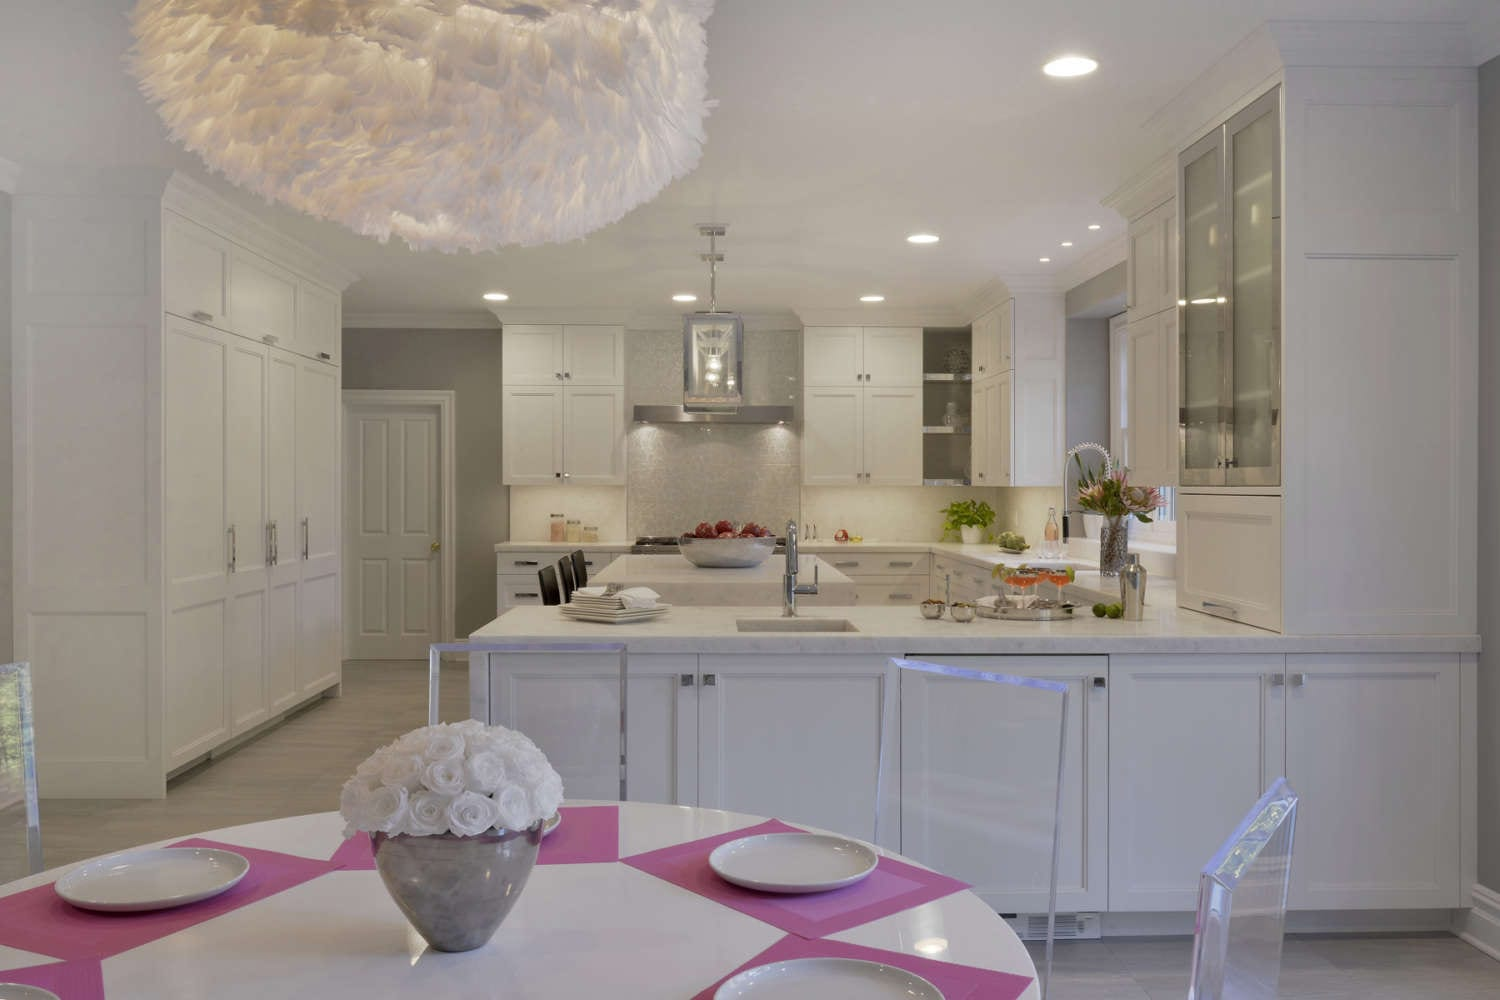 All white kitchen features fully custom frameless shaker style double tiered white painted Bilotta Cabinetry with open corner shelves and some frosted glass fronts, an island and penninsula with white marble waterwall countertop and polished stainless accents. The eat-in dinning area features a large white feathered pendant light. Design by Danielle Florie of Bilotta Kitchens.